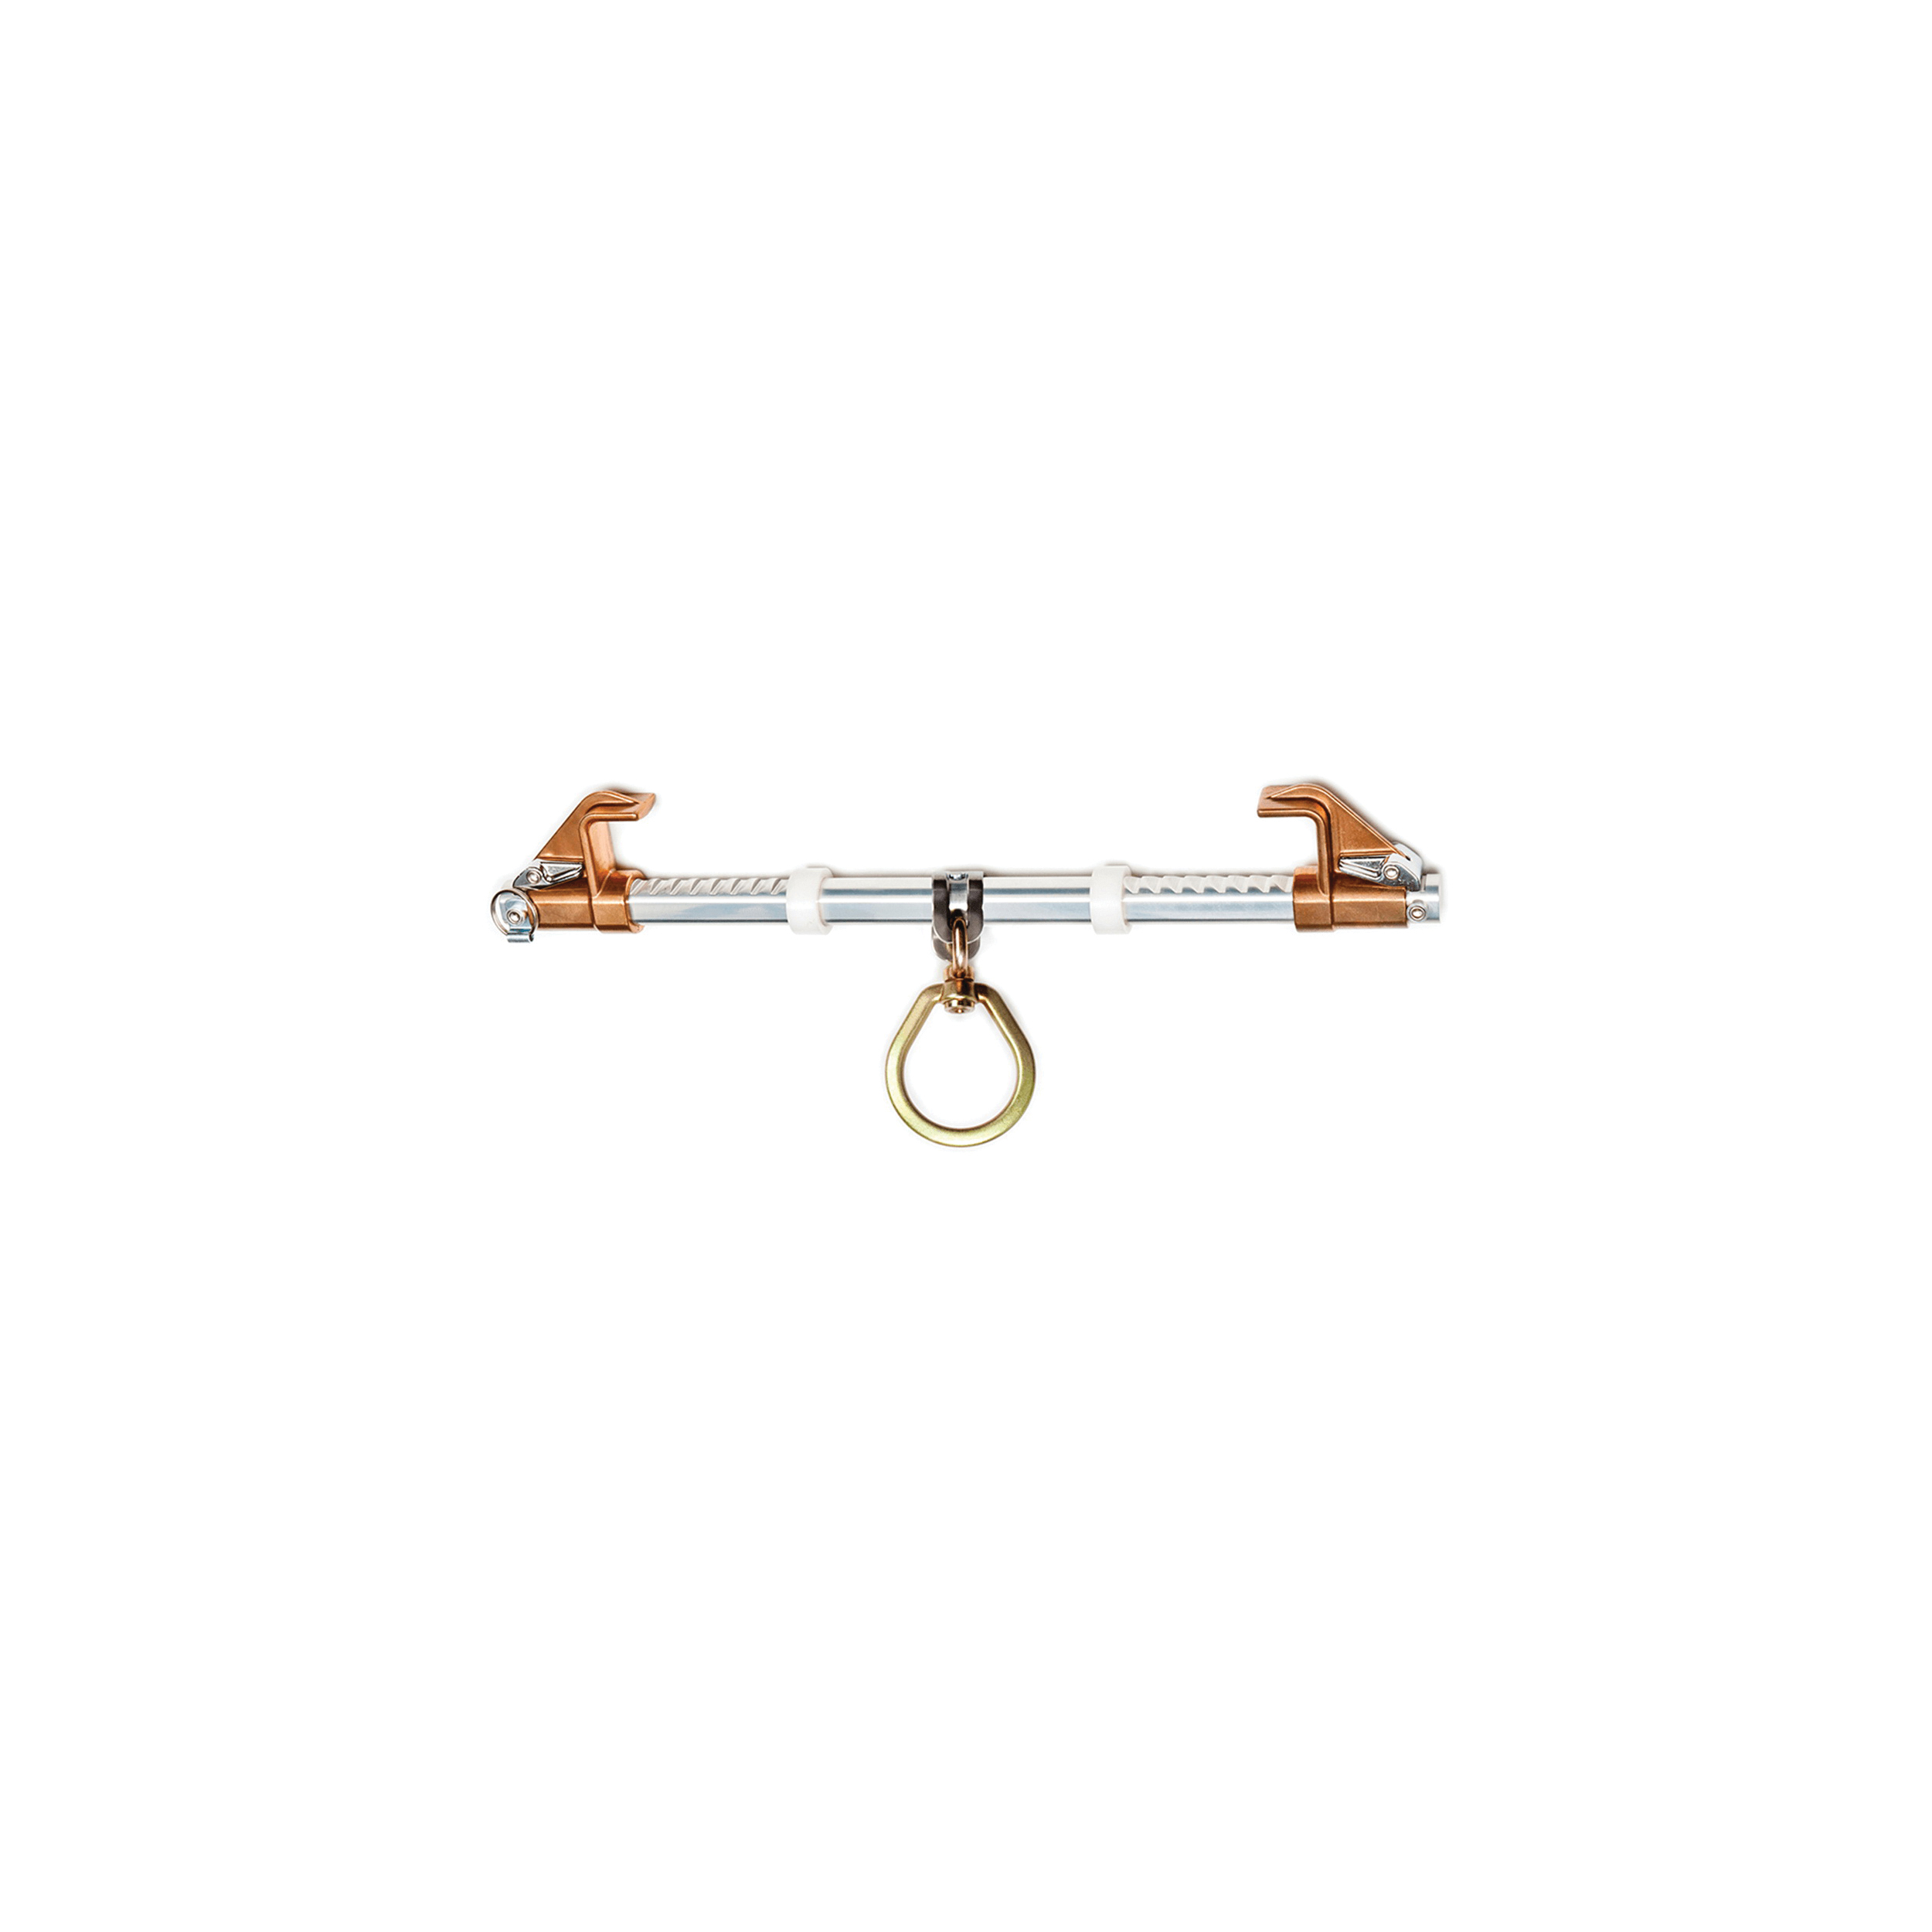 GUARDIAN FALL PROTECTION 00101 BEAMER® 2000 Sliding Beam Anchor With Swivel D-Ring, For Use With 3-1/2 to 14 in Beams and 1-1/4 in THK Flange, Aluminum/Bronze Manganese/Zinc Plated Steel/Stainless Steel